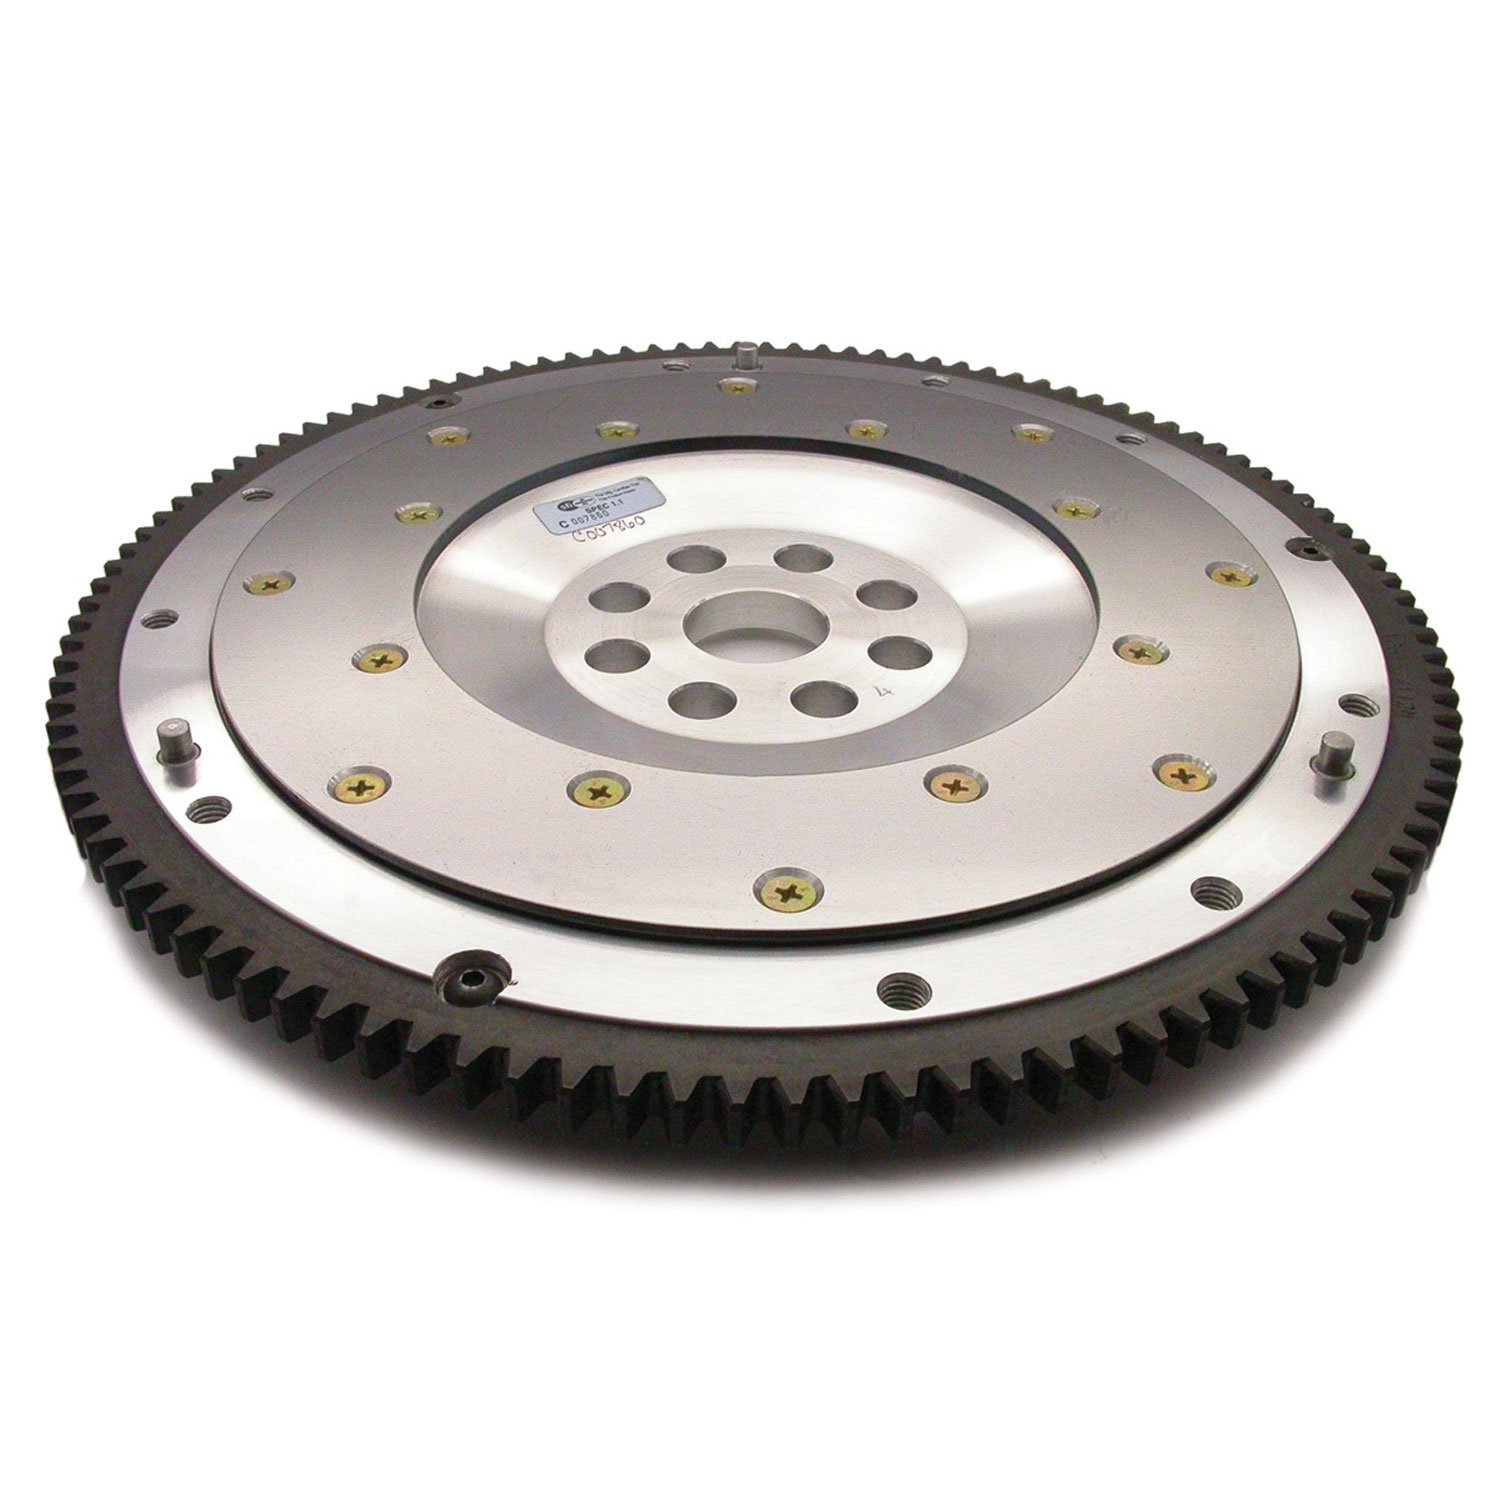 Fidanza 130301 Aluminum Flywheel for Lexus 3L '02-'05 by Fidanza